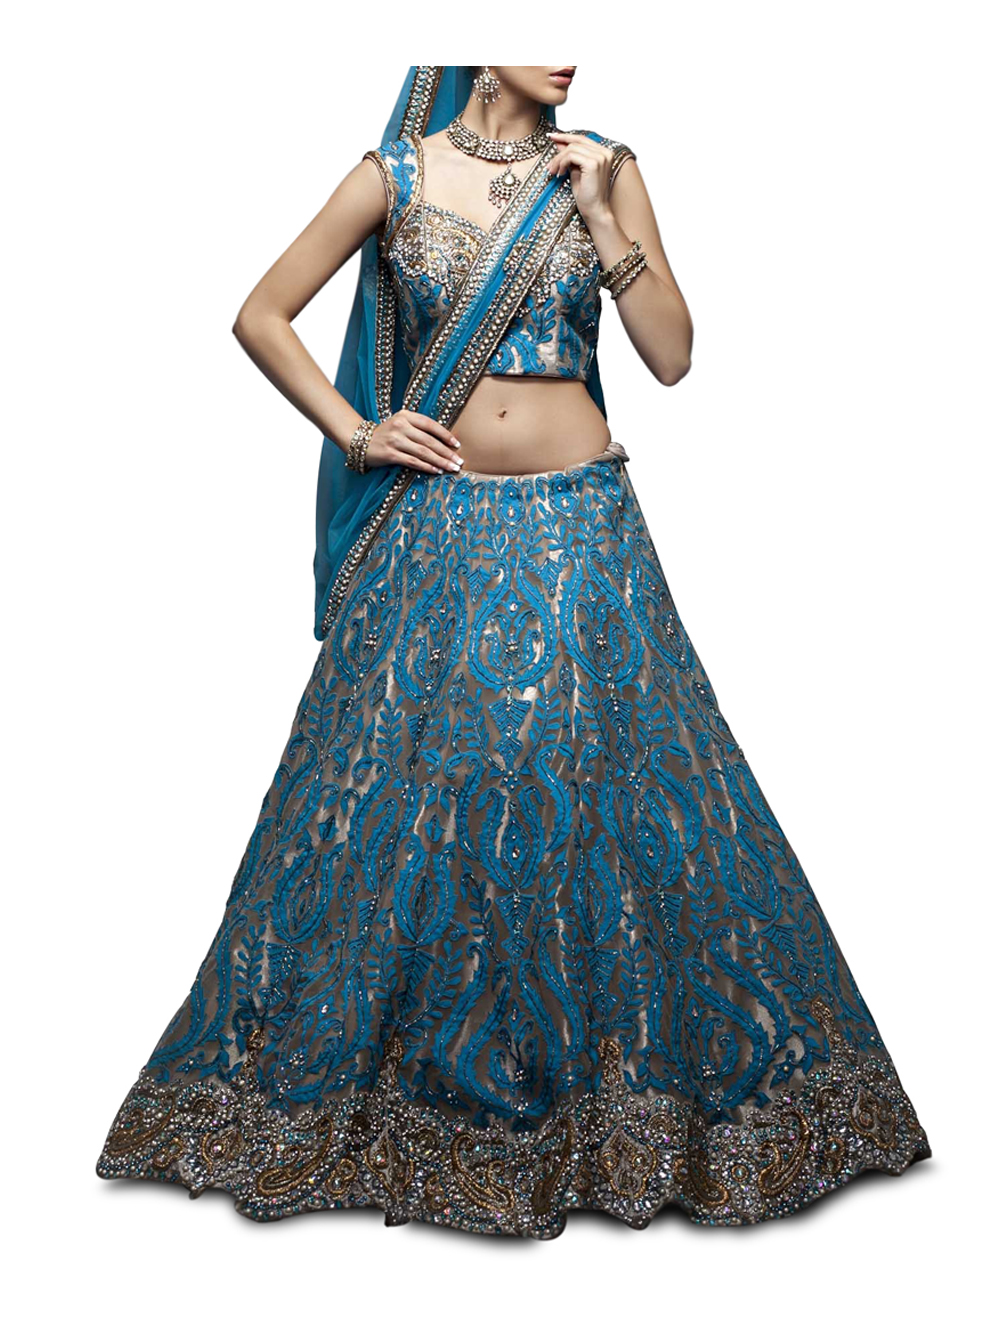 Elegant Indian Clothing & Wedding Outfits